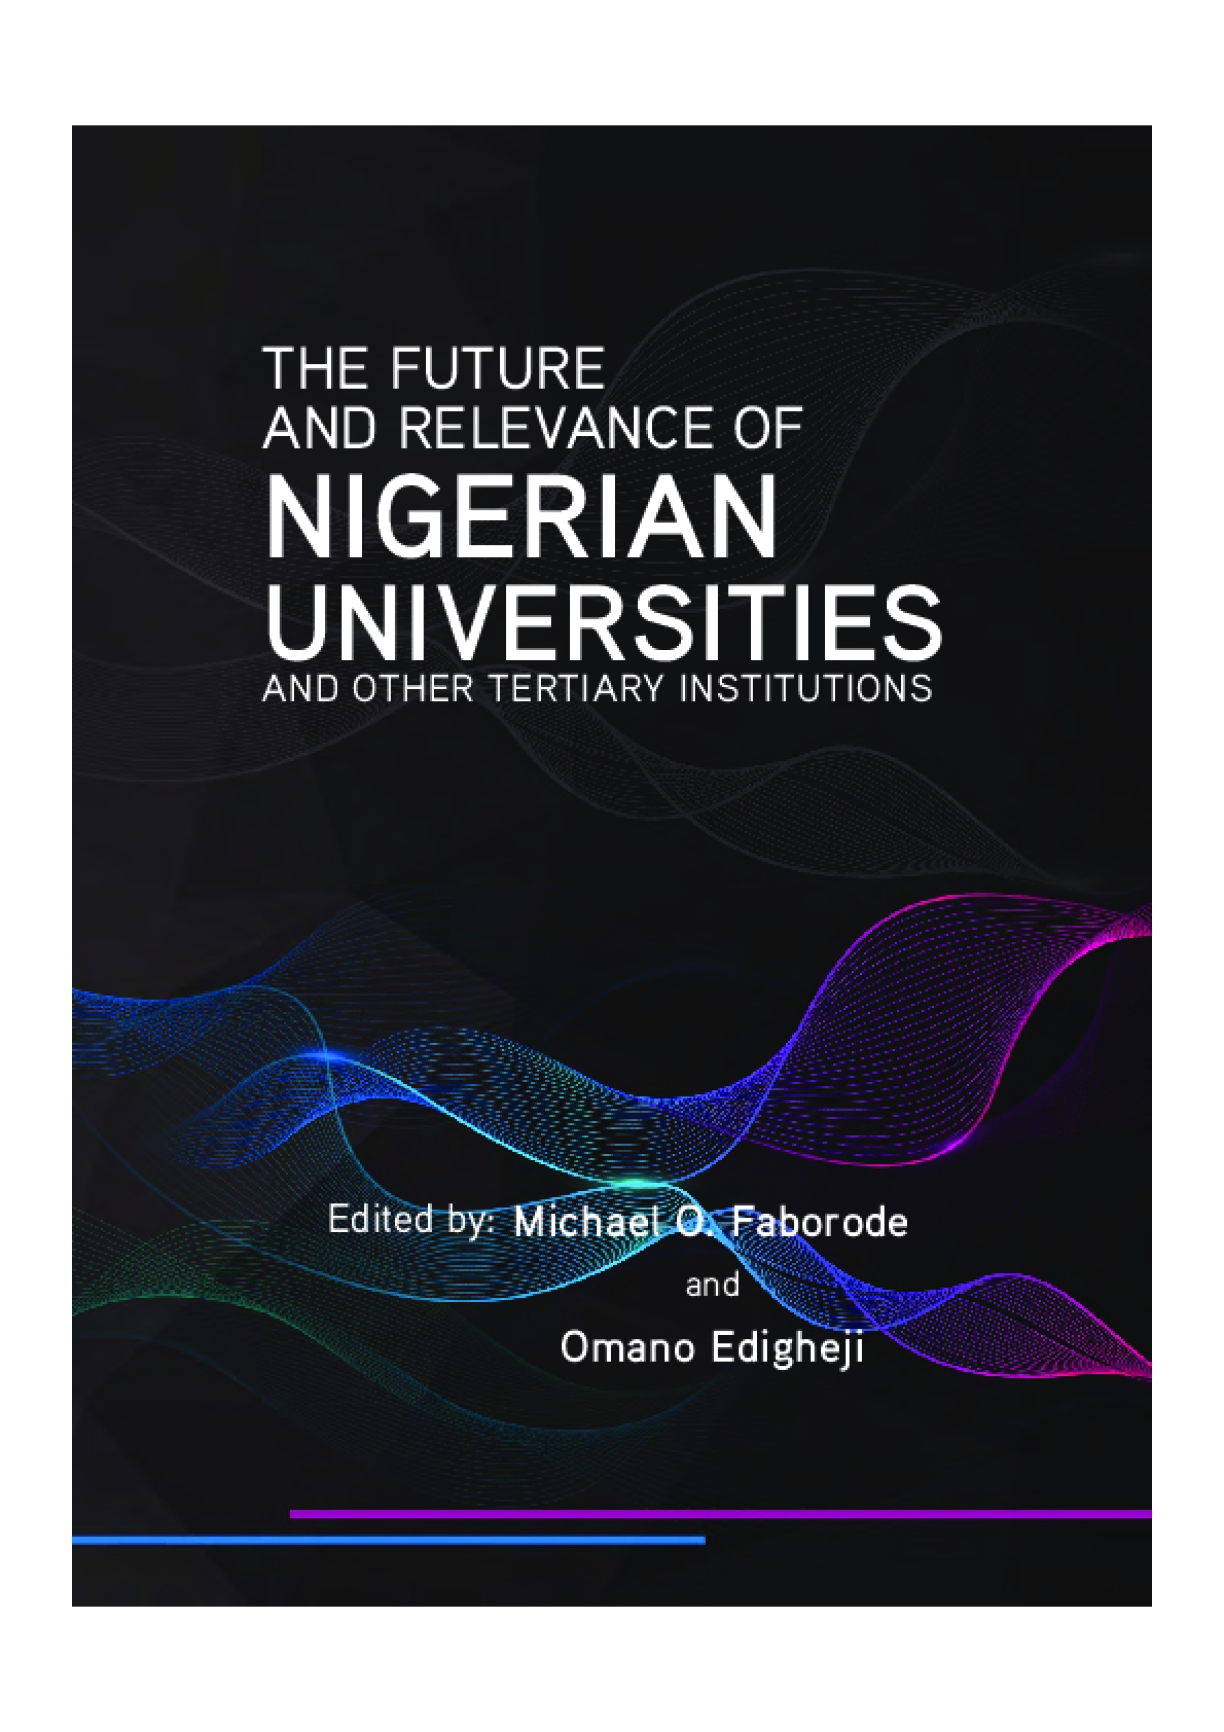 The Future and Relevance of Nigerian Universities and other Tertiary Institutions